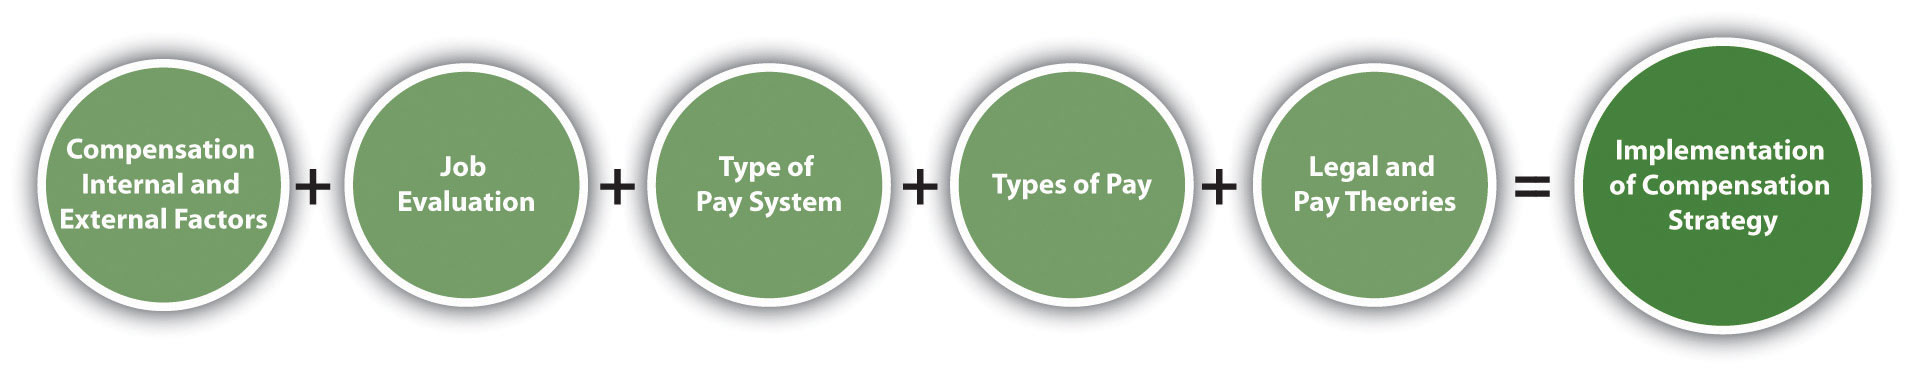 The process for implementing compensation strategy: compensation internal and external factors + job evaluation + type of pay system + types of pay + legal and pay theories = implementation of compensation strategy.